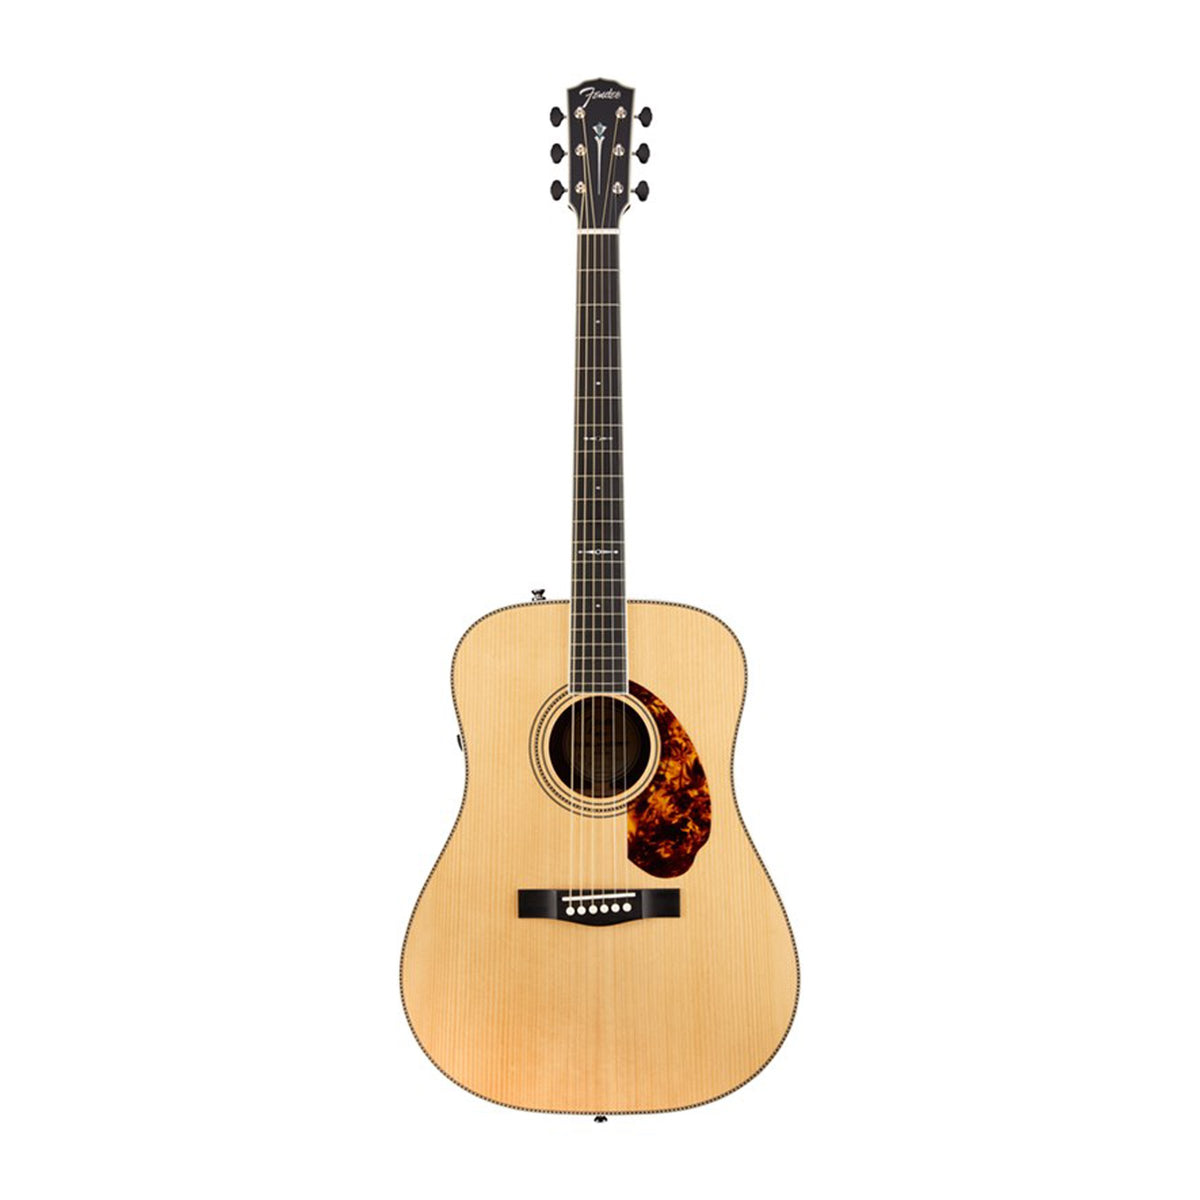 PM-1 Limited Adirondack Dreadnought, Rosewood